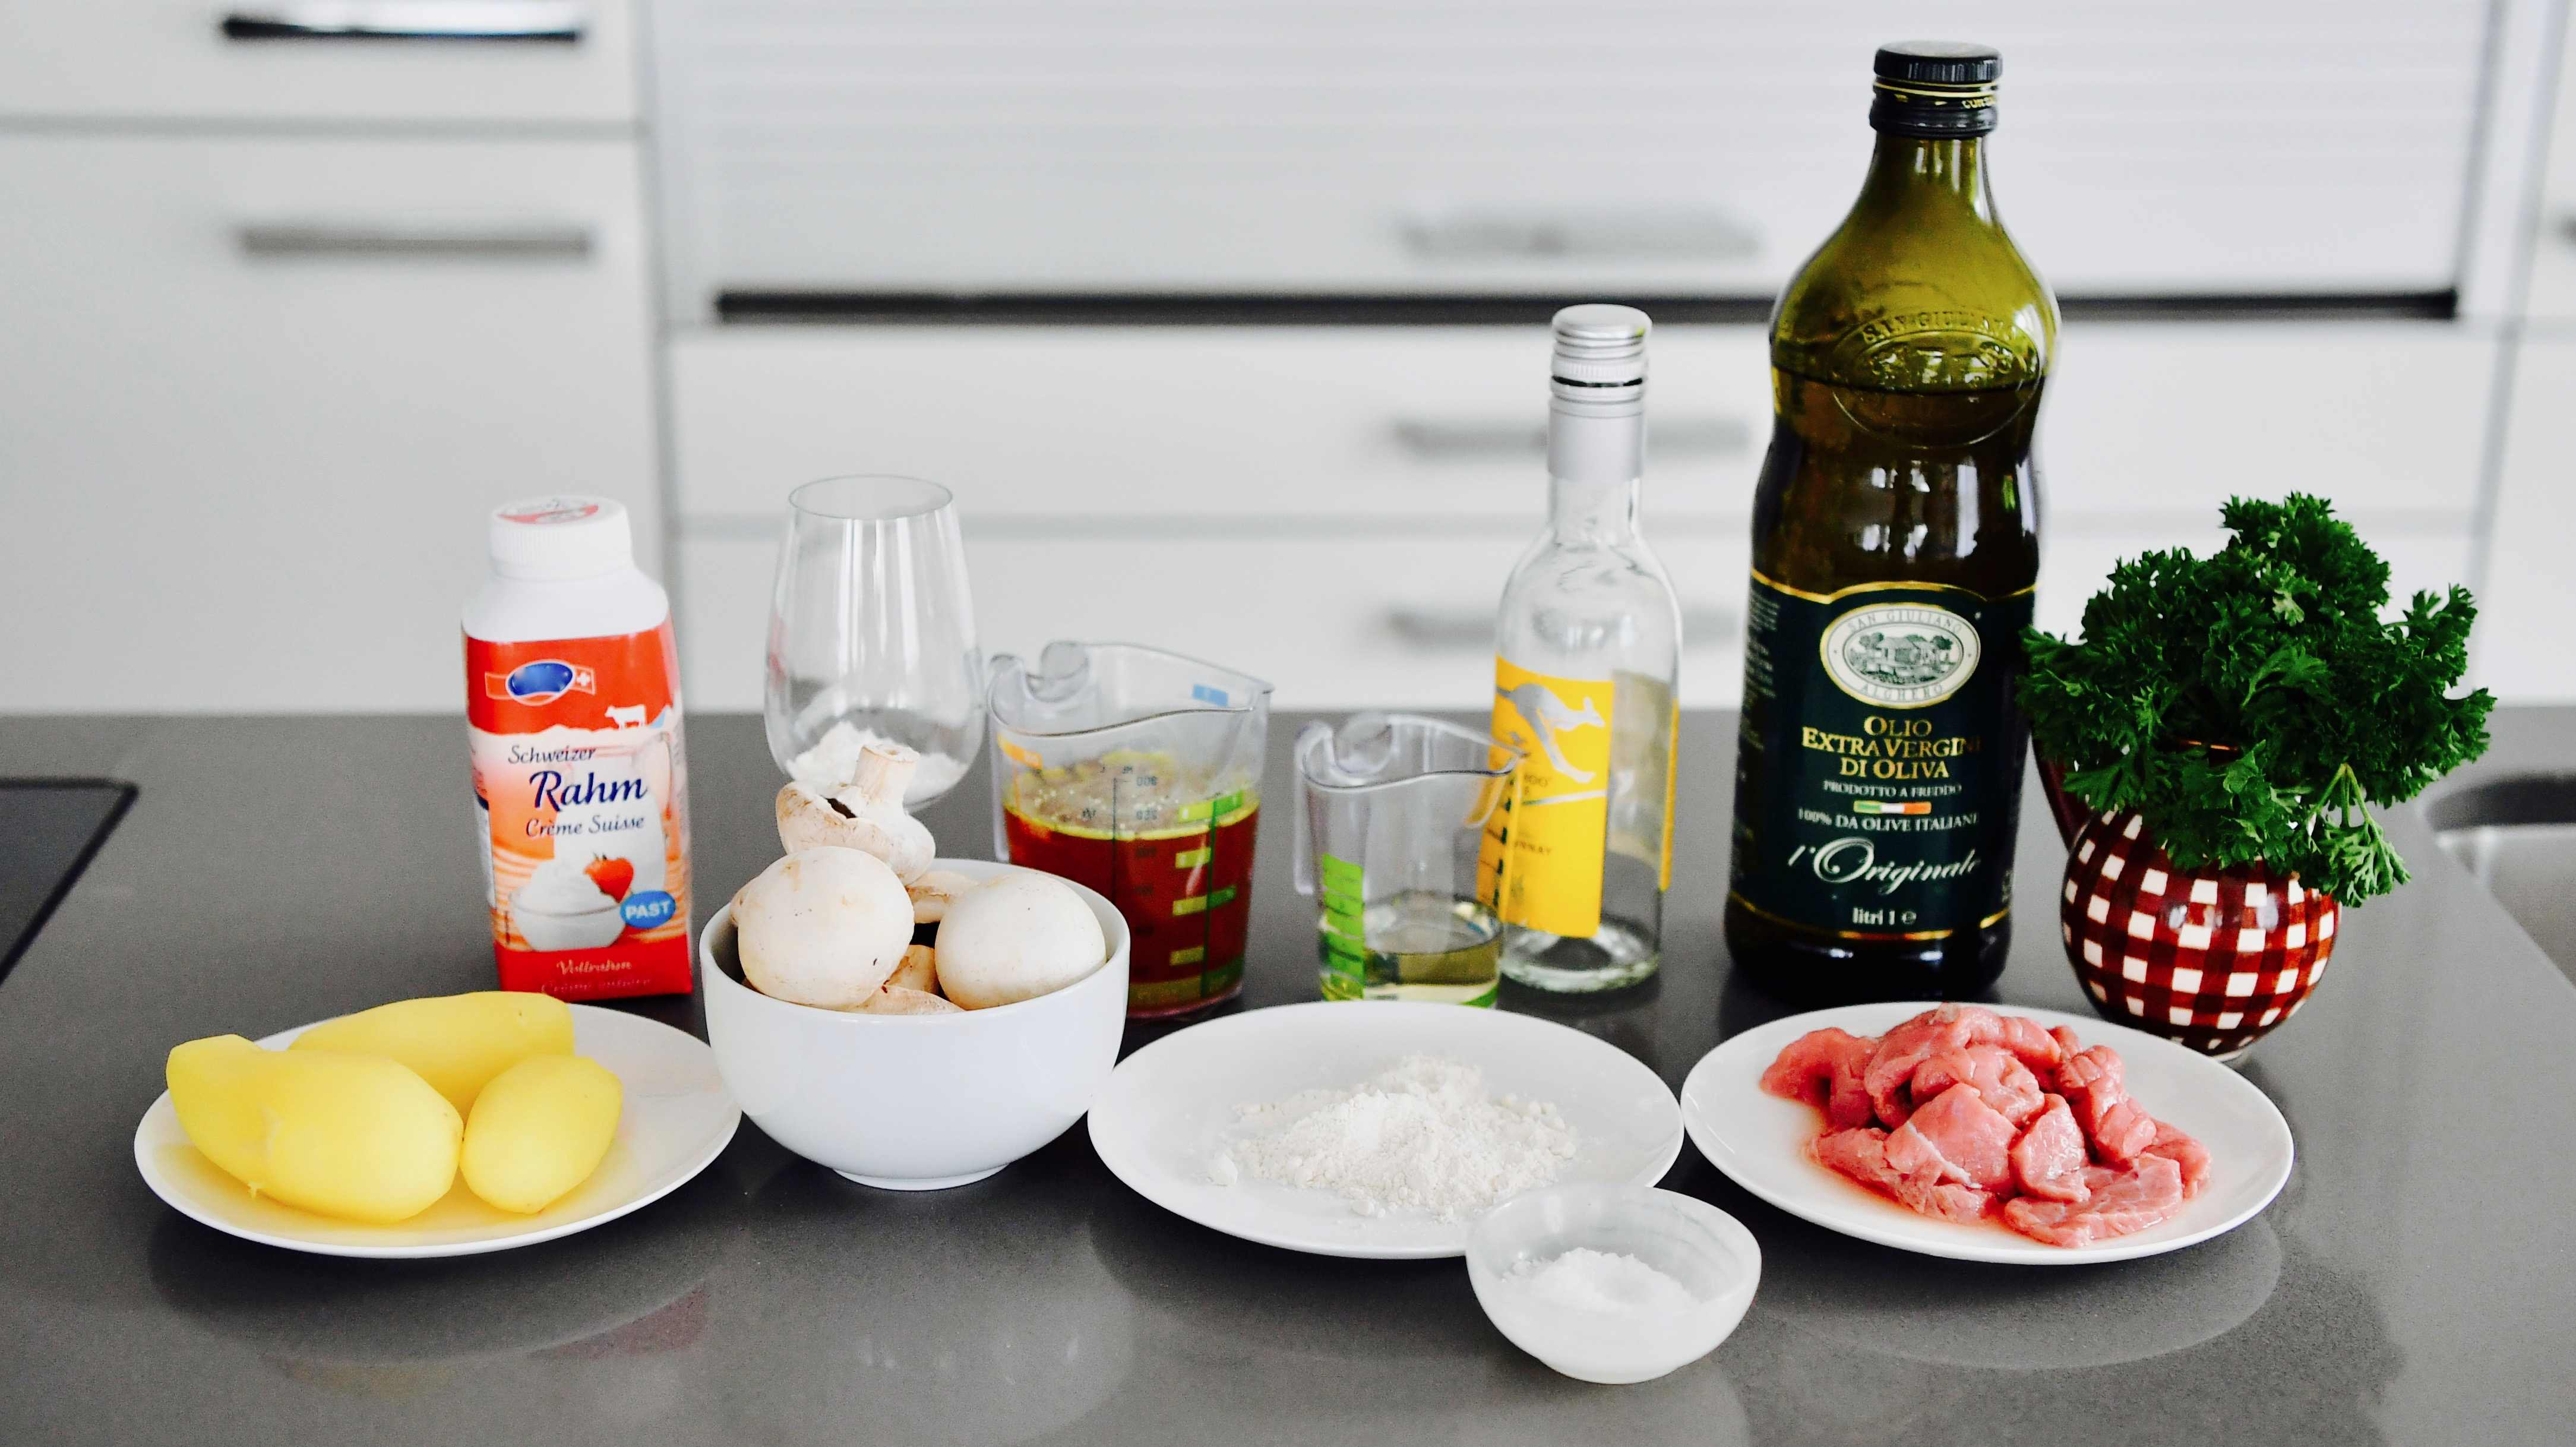 ingredientes ternera al estilo de zurich